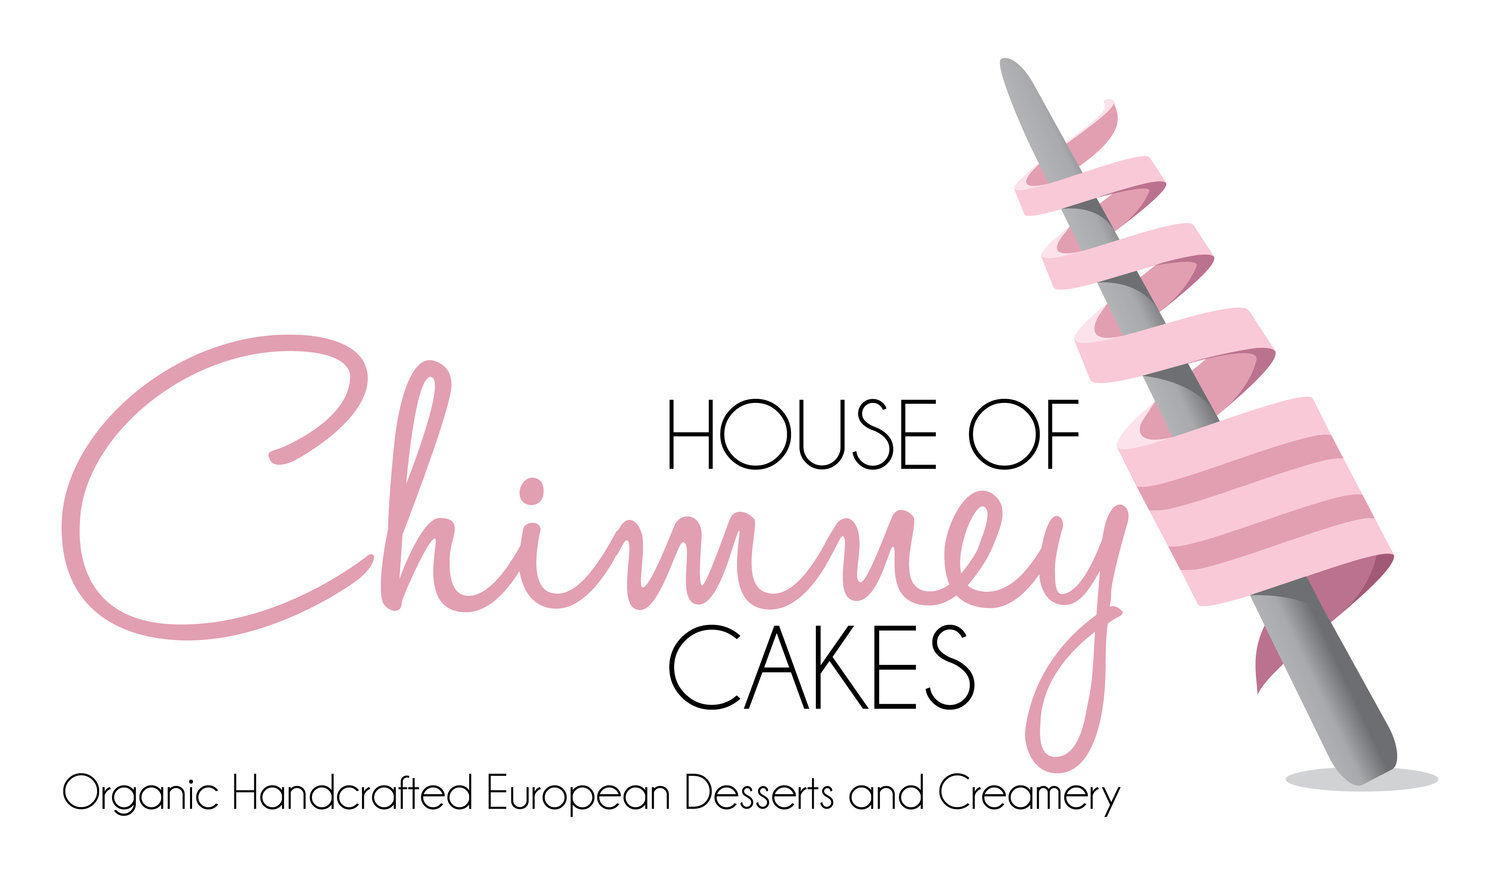 House of Chimney Cakes